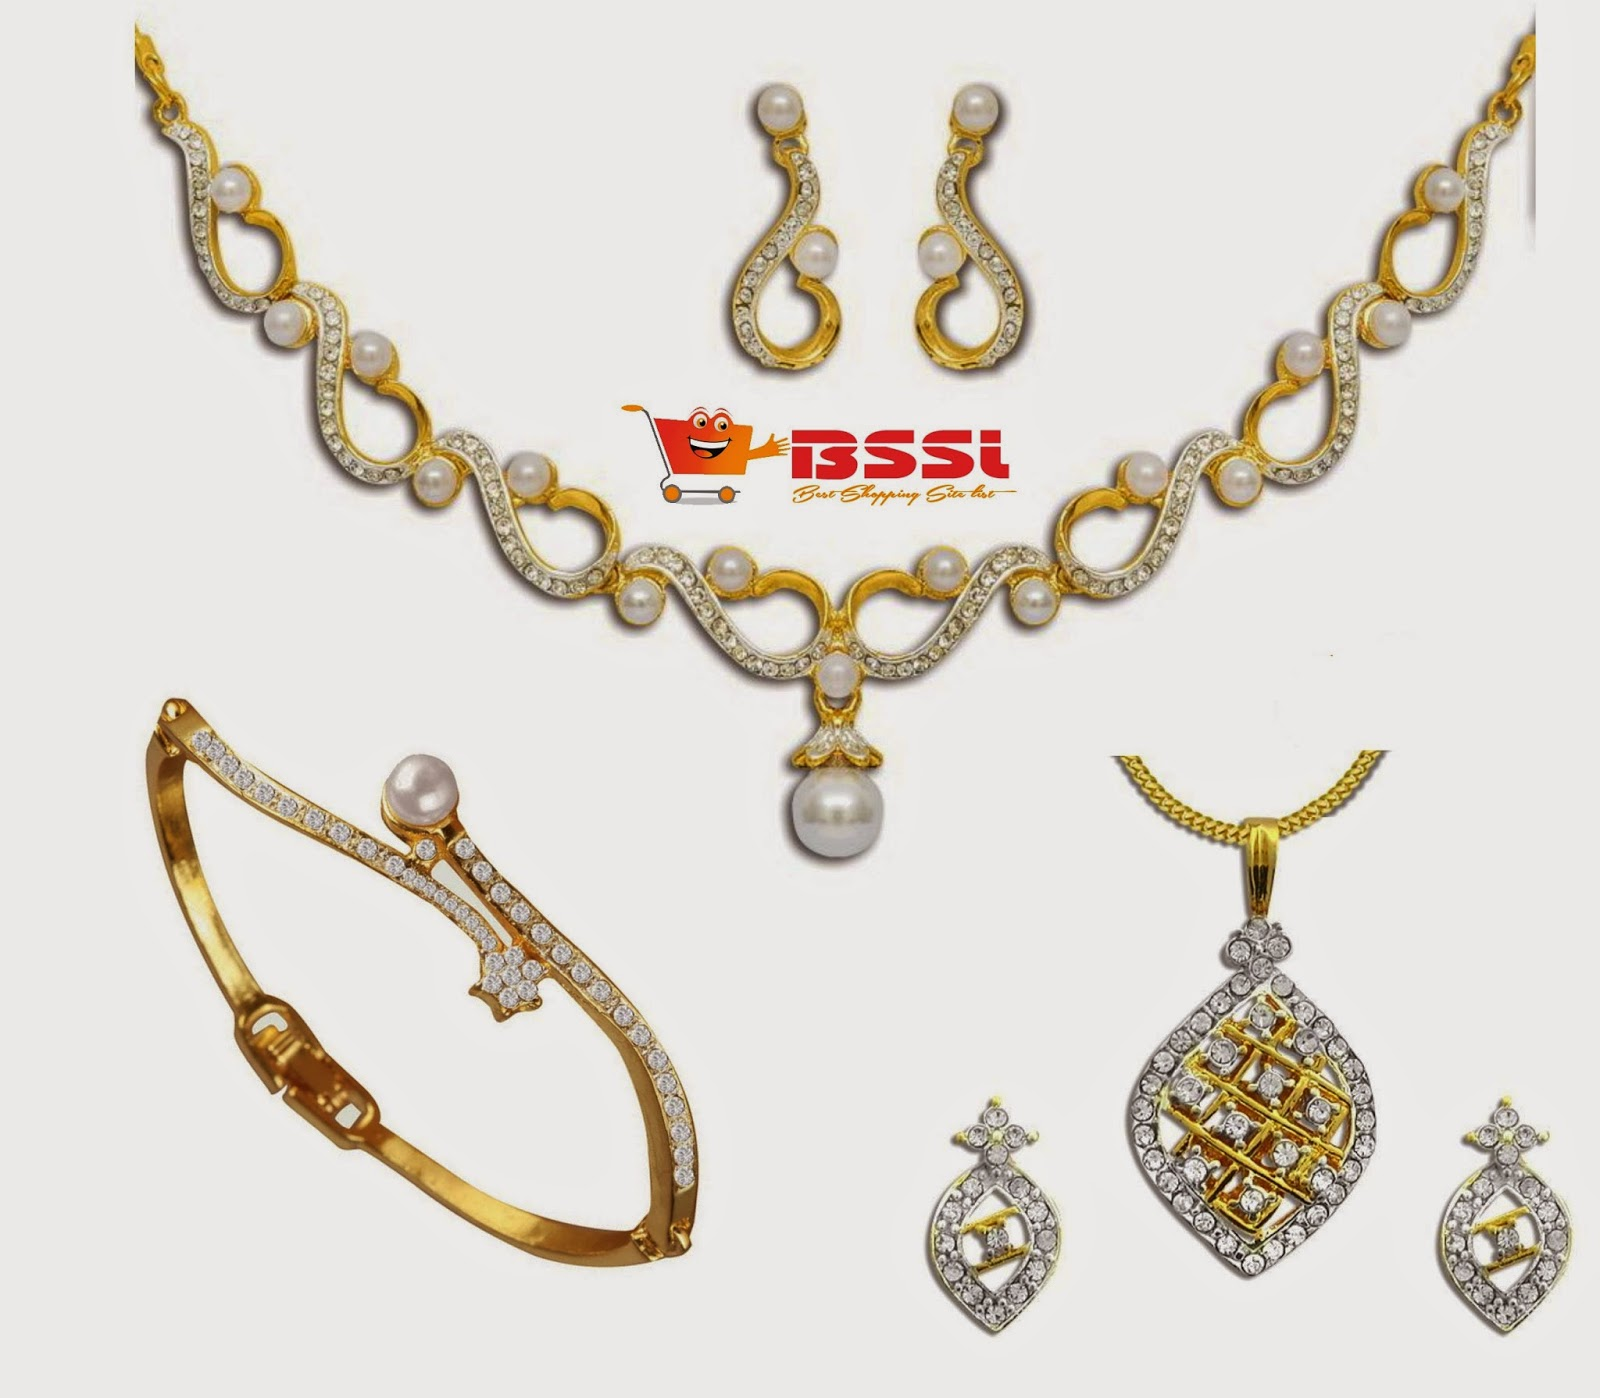 the different parts online example examples magento jewellery world blog of store shopping jewelry websites from